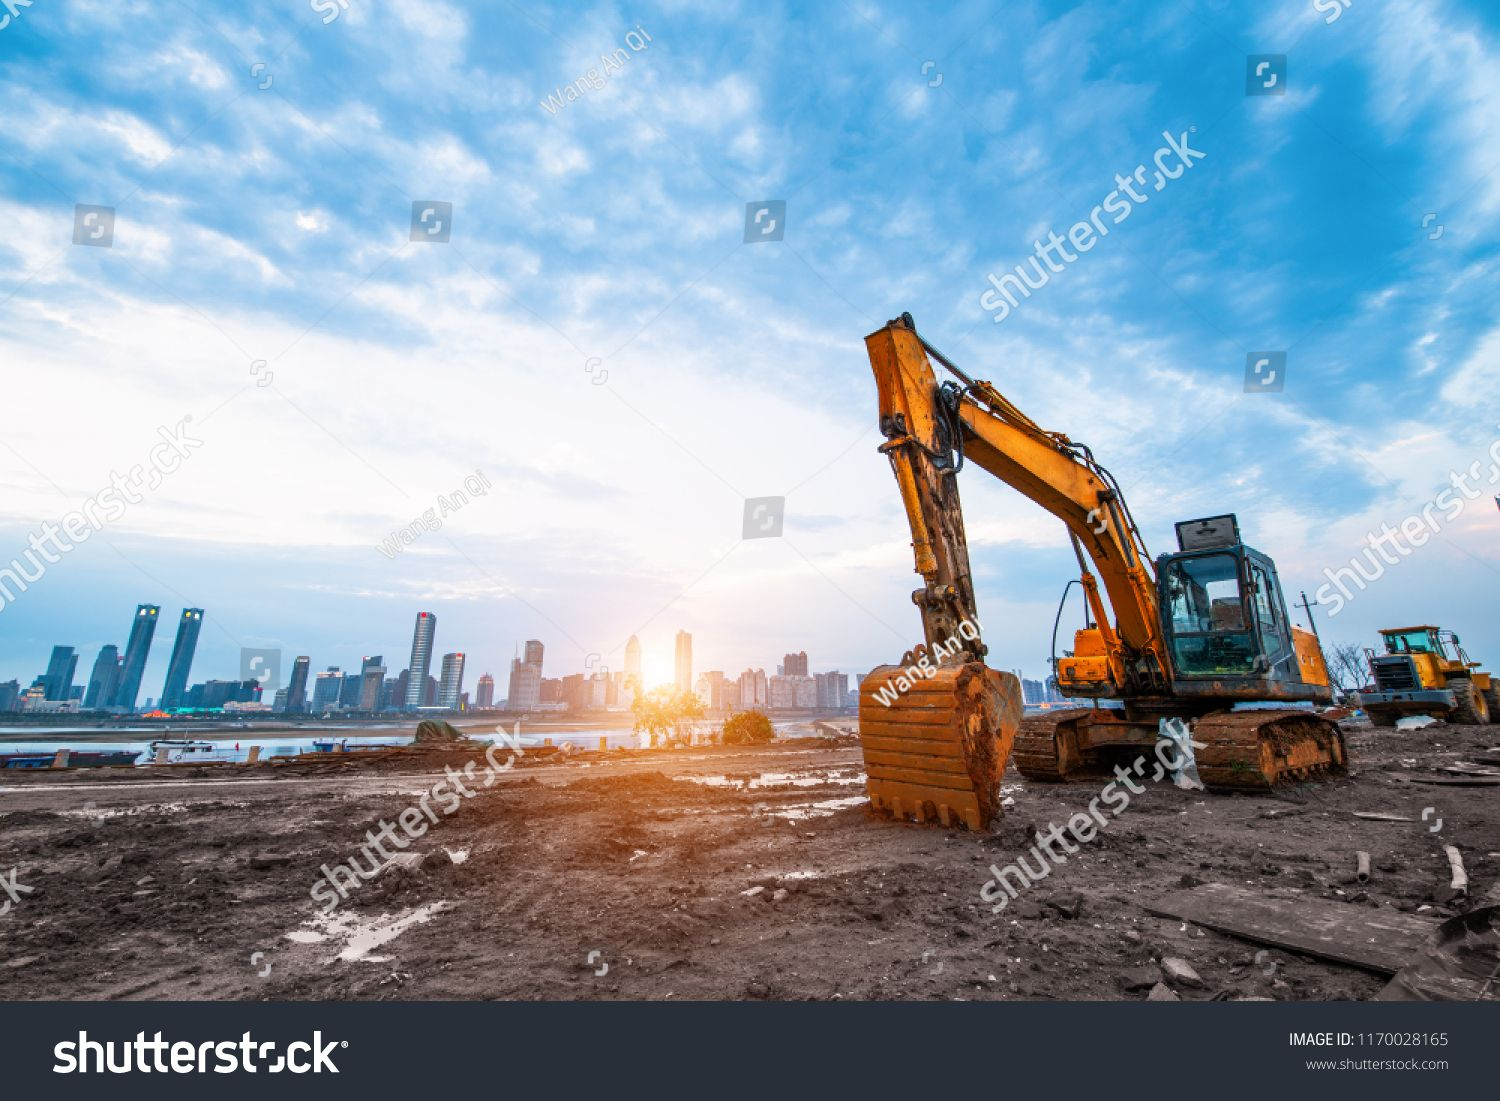 Excavator In Construction Site On Sunset Sky Background Sponsored Ad Site Construction Excavator Background Sunset Sky Construction Site Soil Mechanics